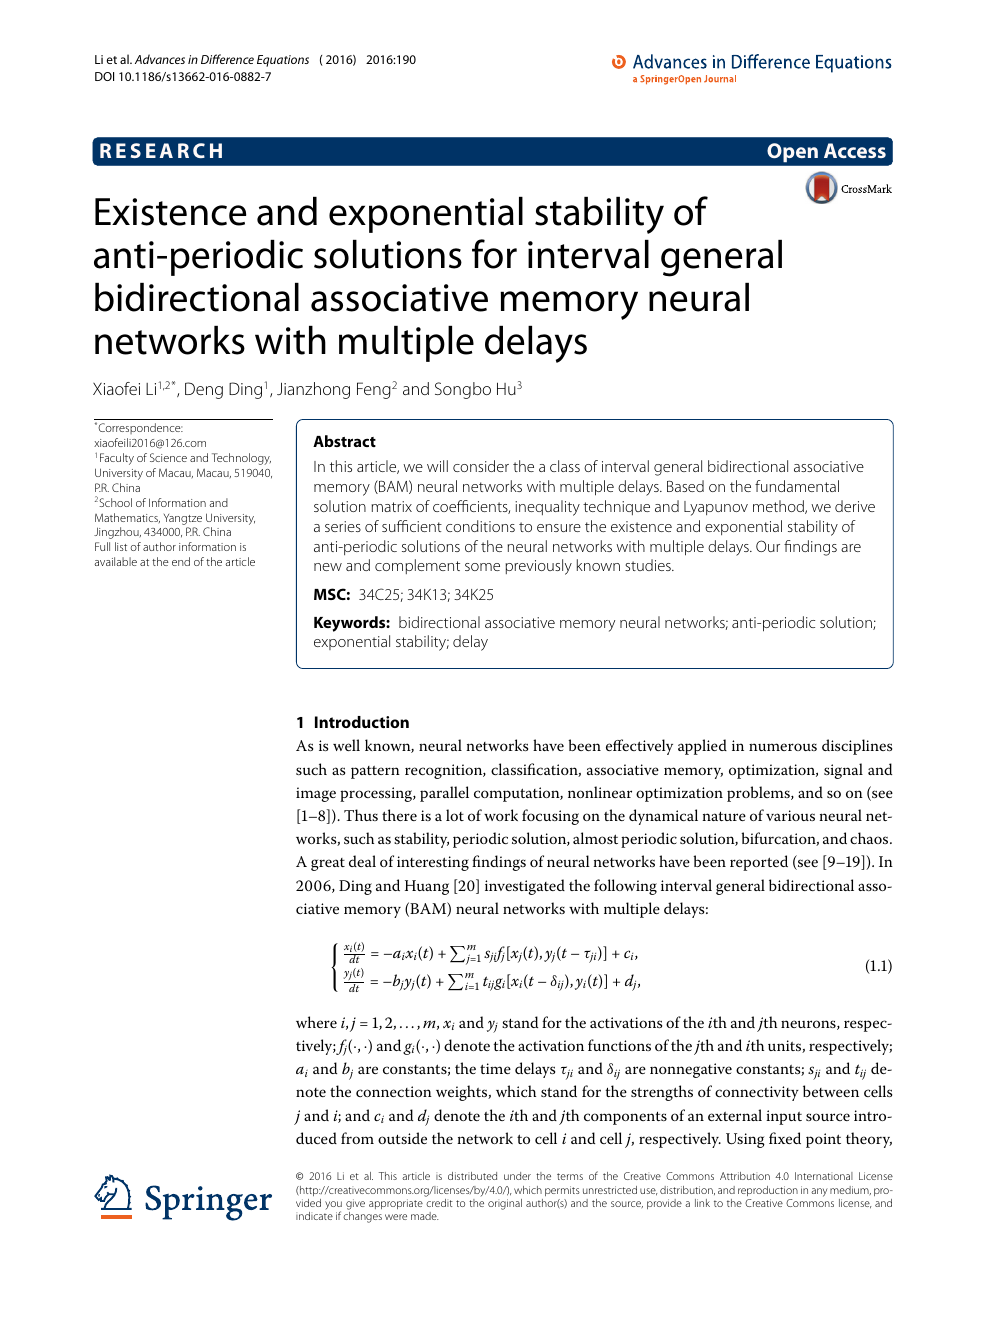 Existence and exponential stability of anti-periodic